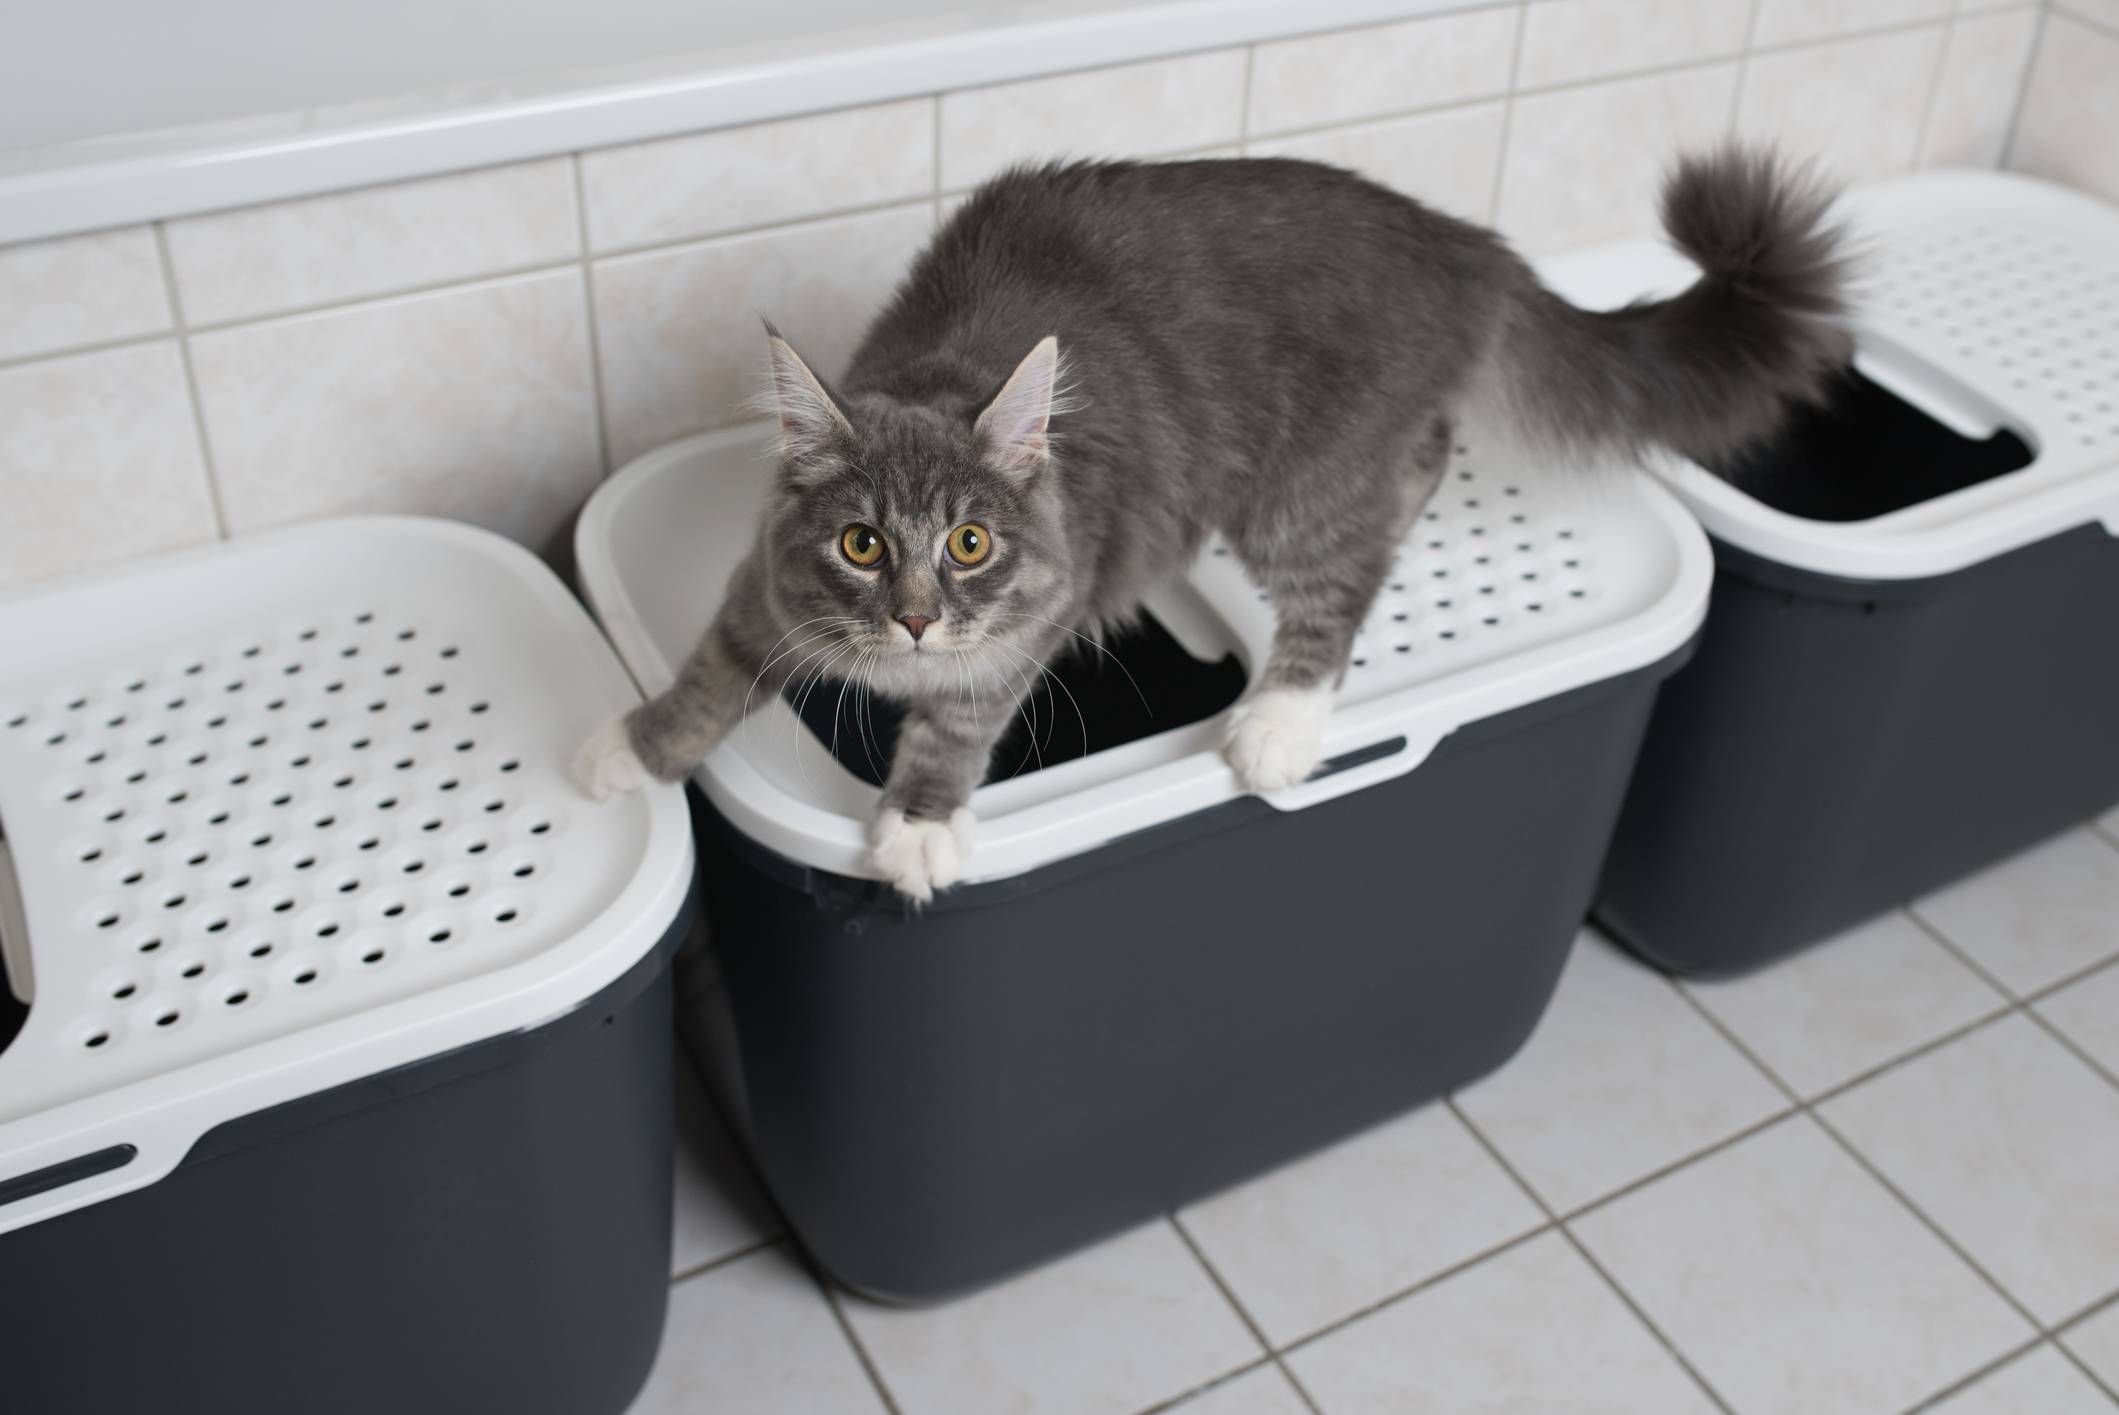 Where & How to Set Up a Litter Box | Arm & Hammer Cat Litter